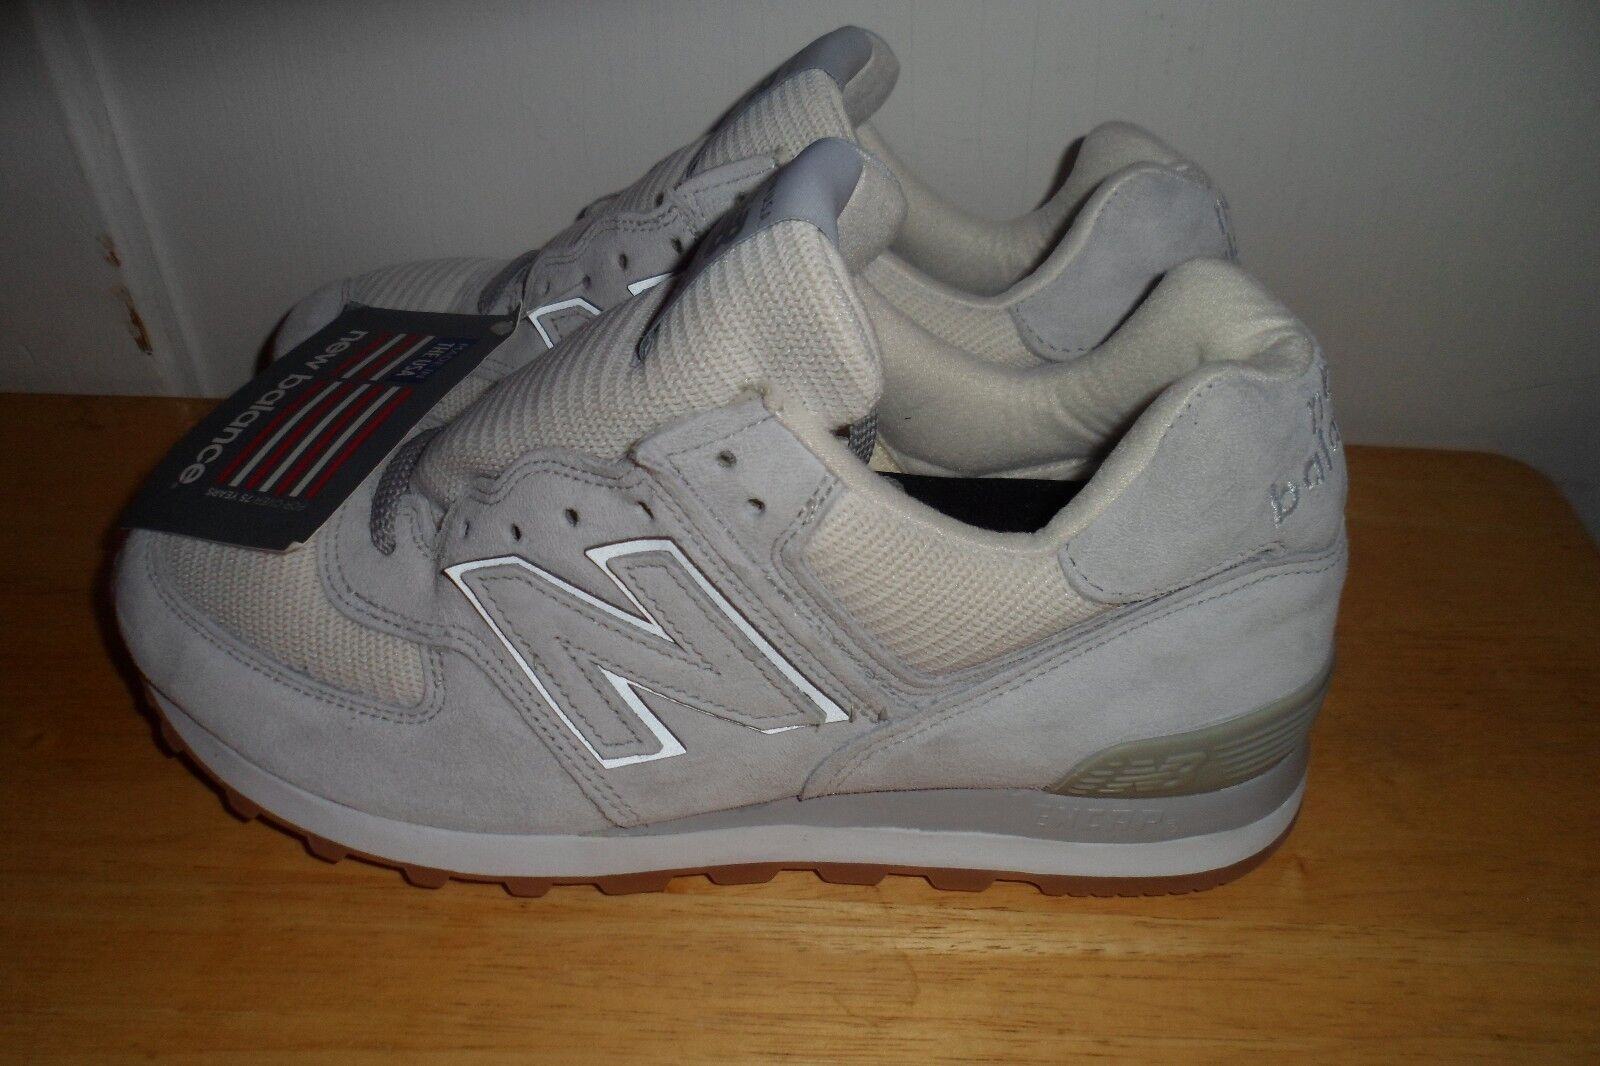 MUST SEE AWESOME NWT New Balance Custom 574 US574W1 SHOES WOMENS 8.5 B